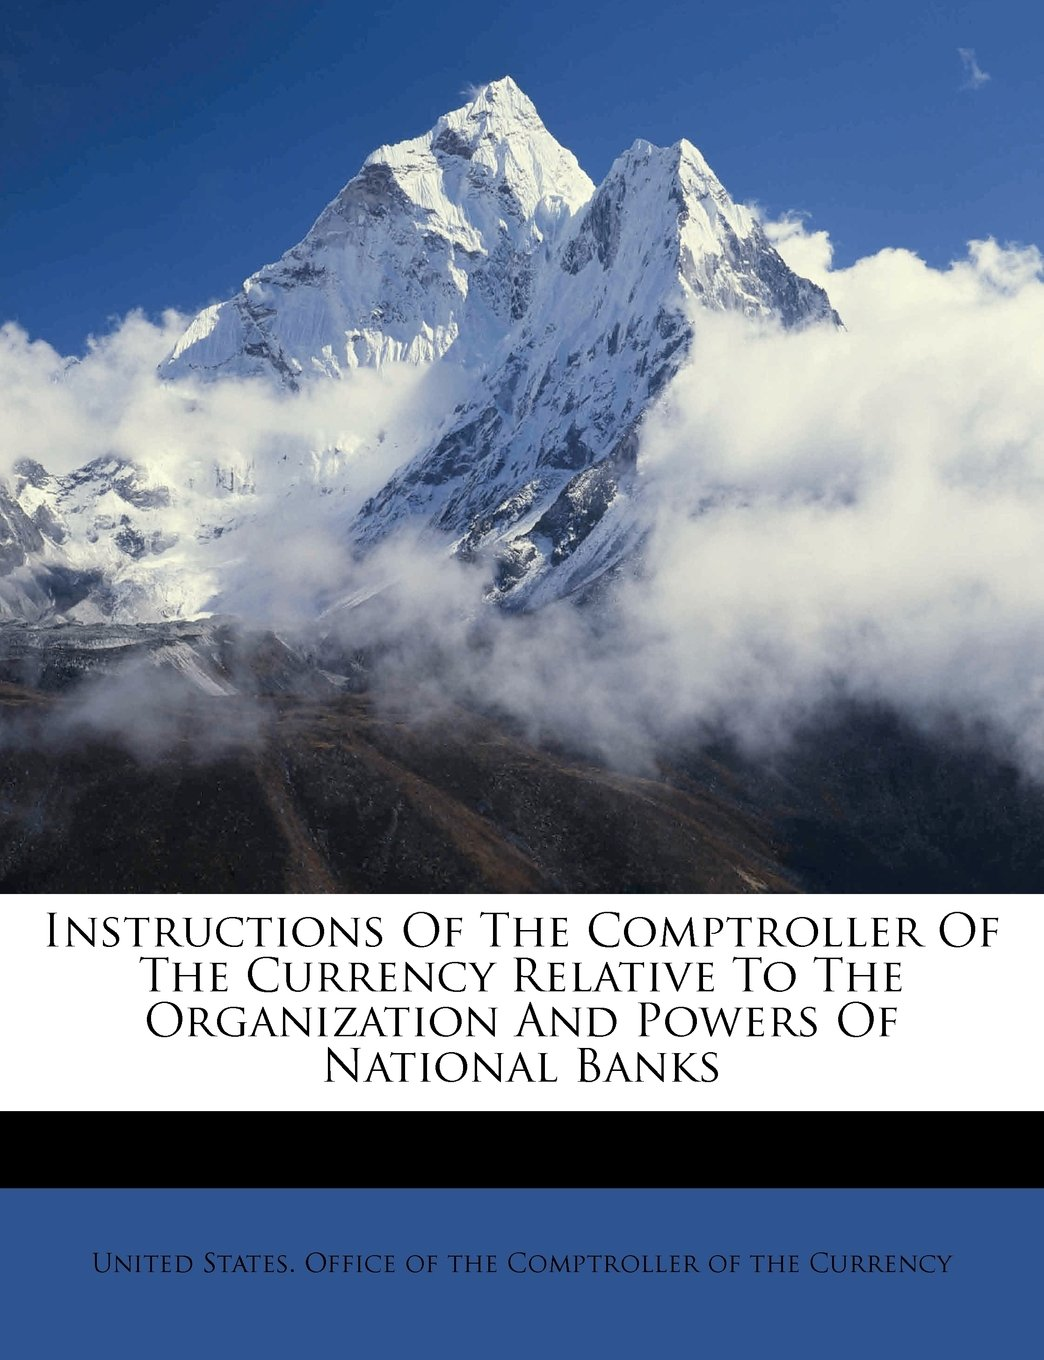 Download Instructions Of The Comptroller Of The Currency Relative To The Organization And Powers Of National Banks PDF